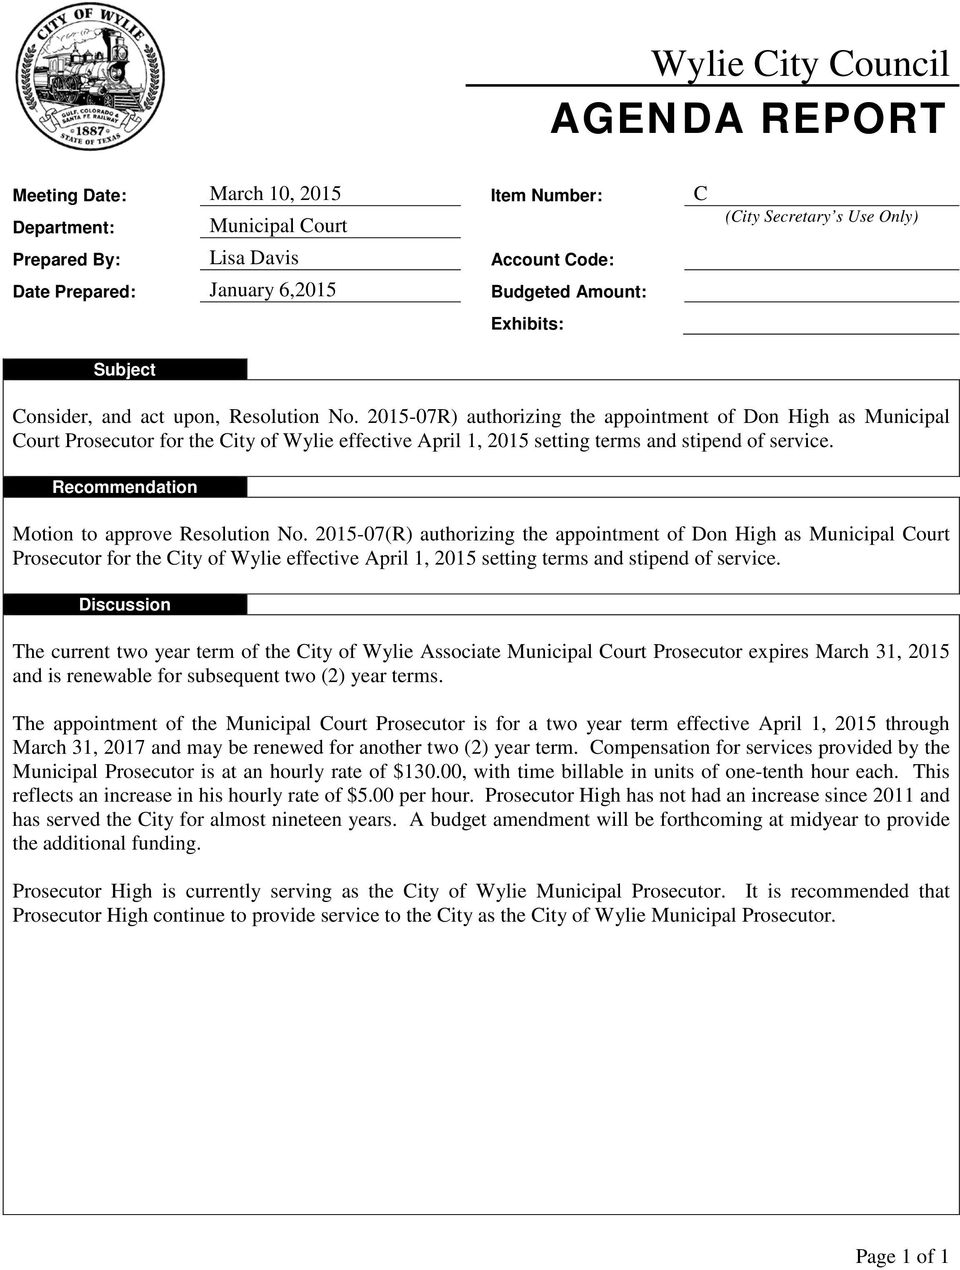 2015-07R) authorizing the appointment of Don High as Municipal Court Prosecutor for the City of Wylie effective April 1, 2015 setting terms and stipend of service.